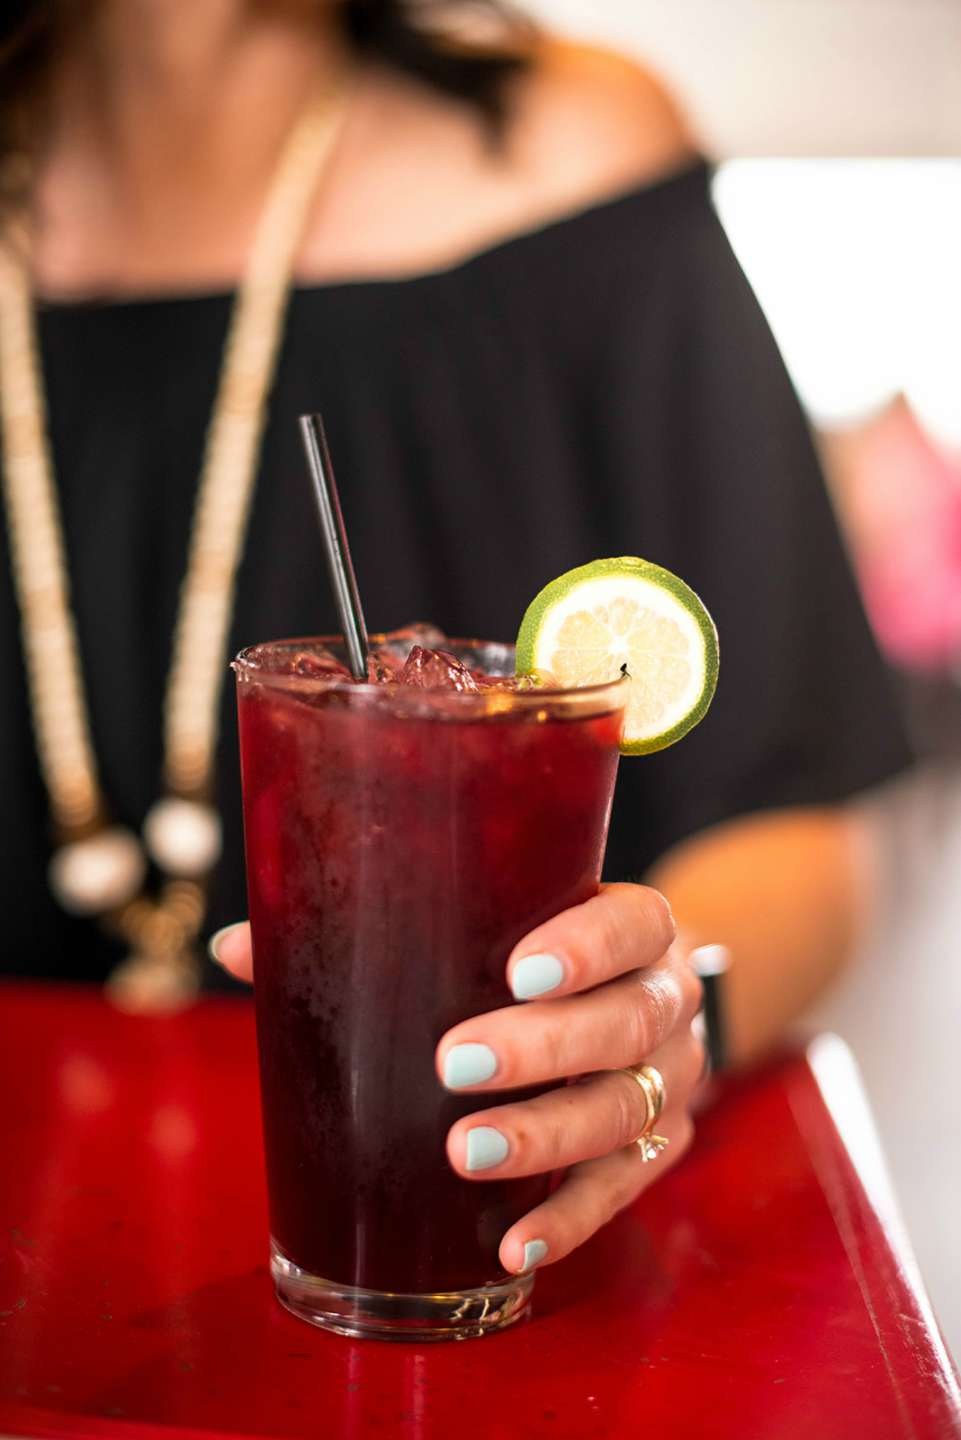 Top 10 most popular posts of 2018 featured by top North Carolina life and style blog, I'm Fixin' To: image of a woman holding a cocktail